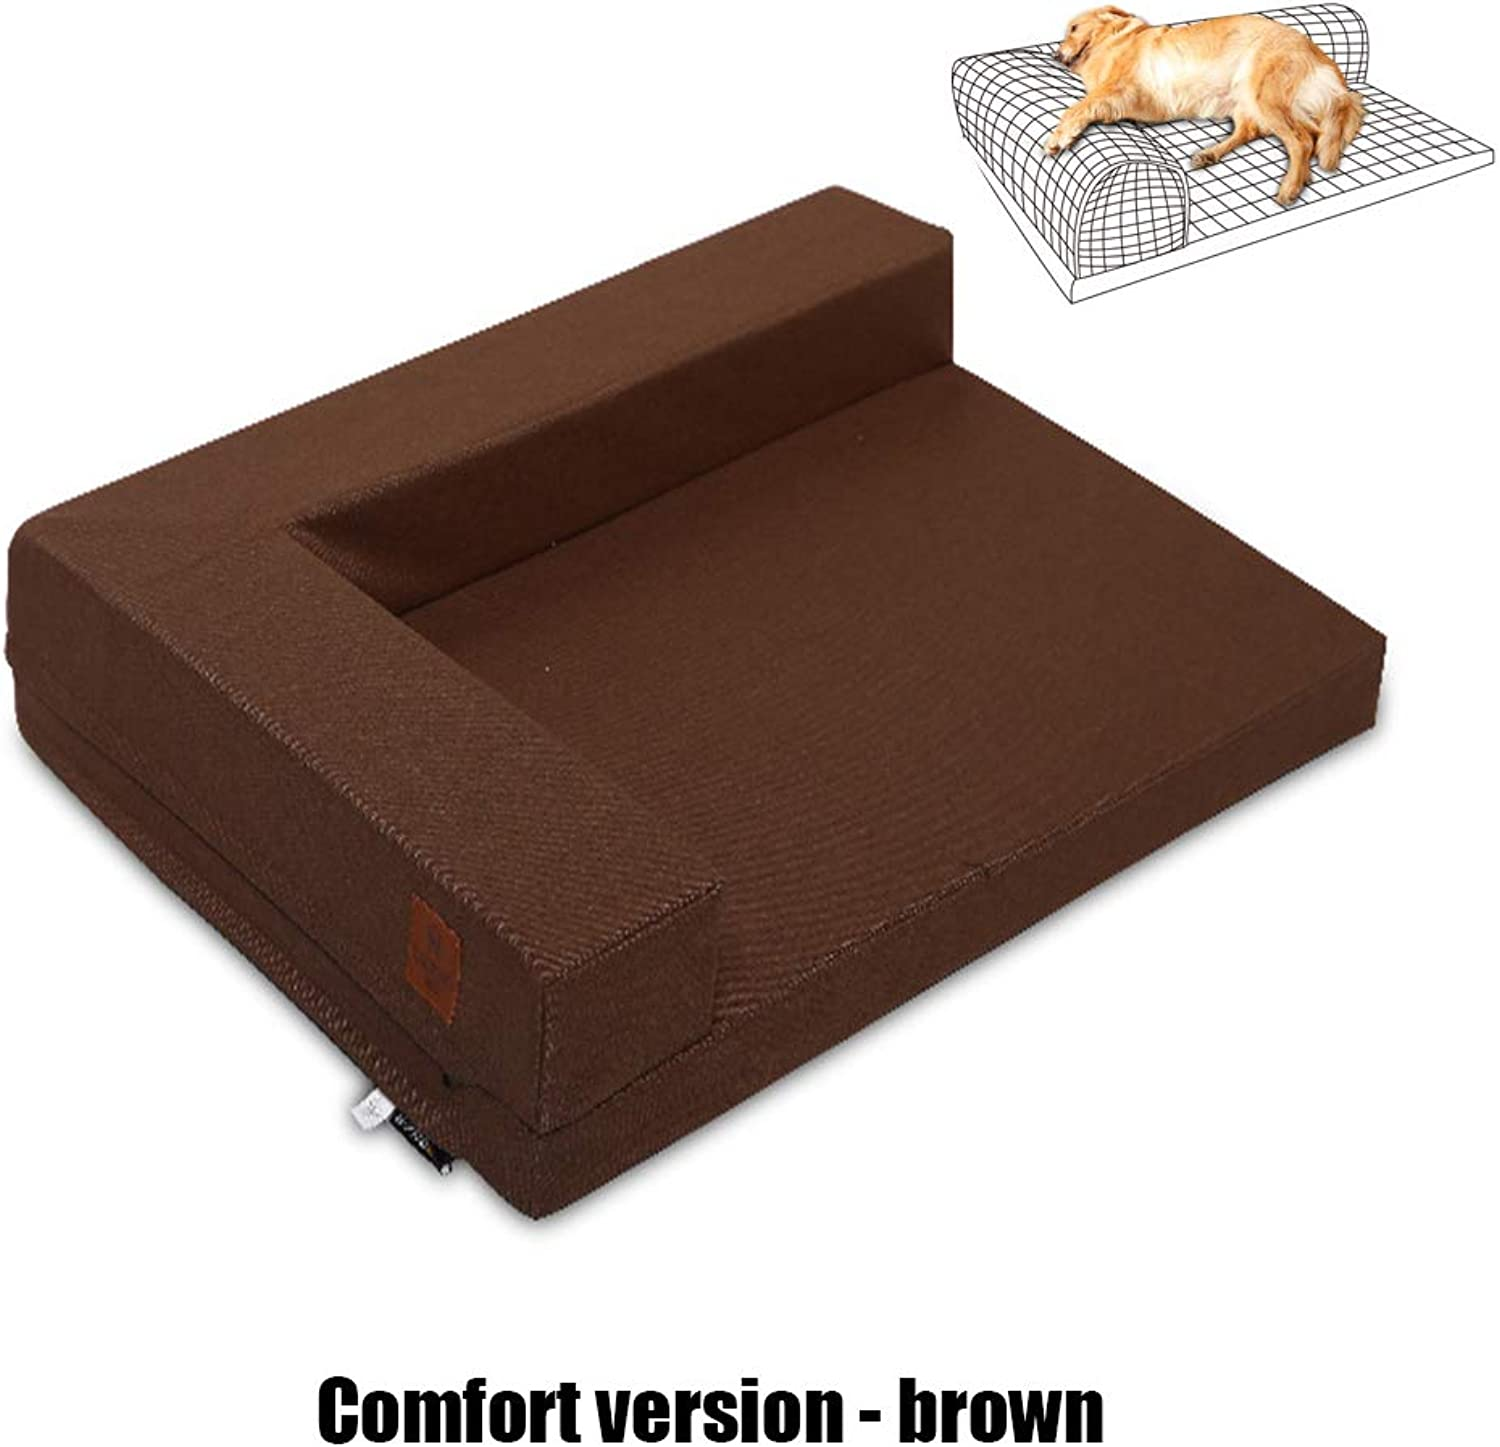 JiMany Pet dog bed, dog and cat sofa bed pillows, summer multicolor style,Comfortversionbrown,L